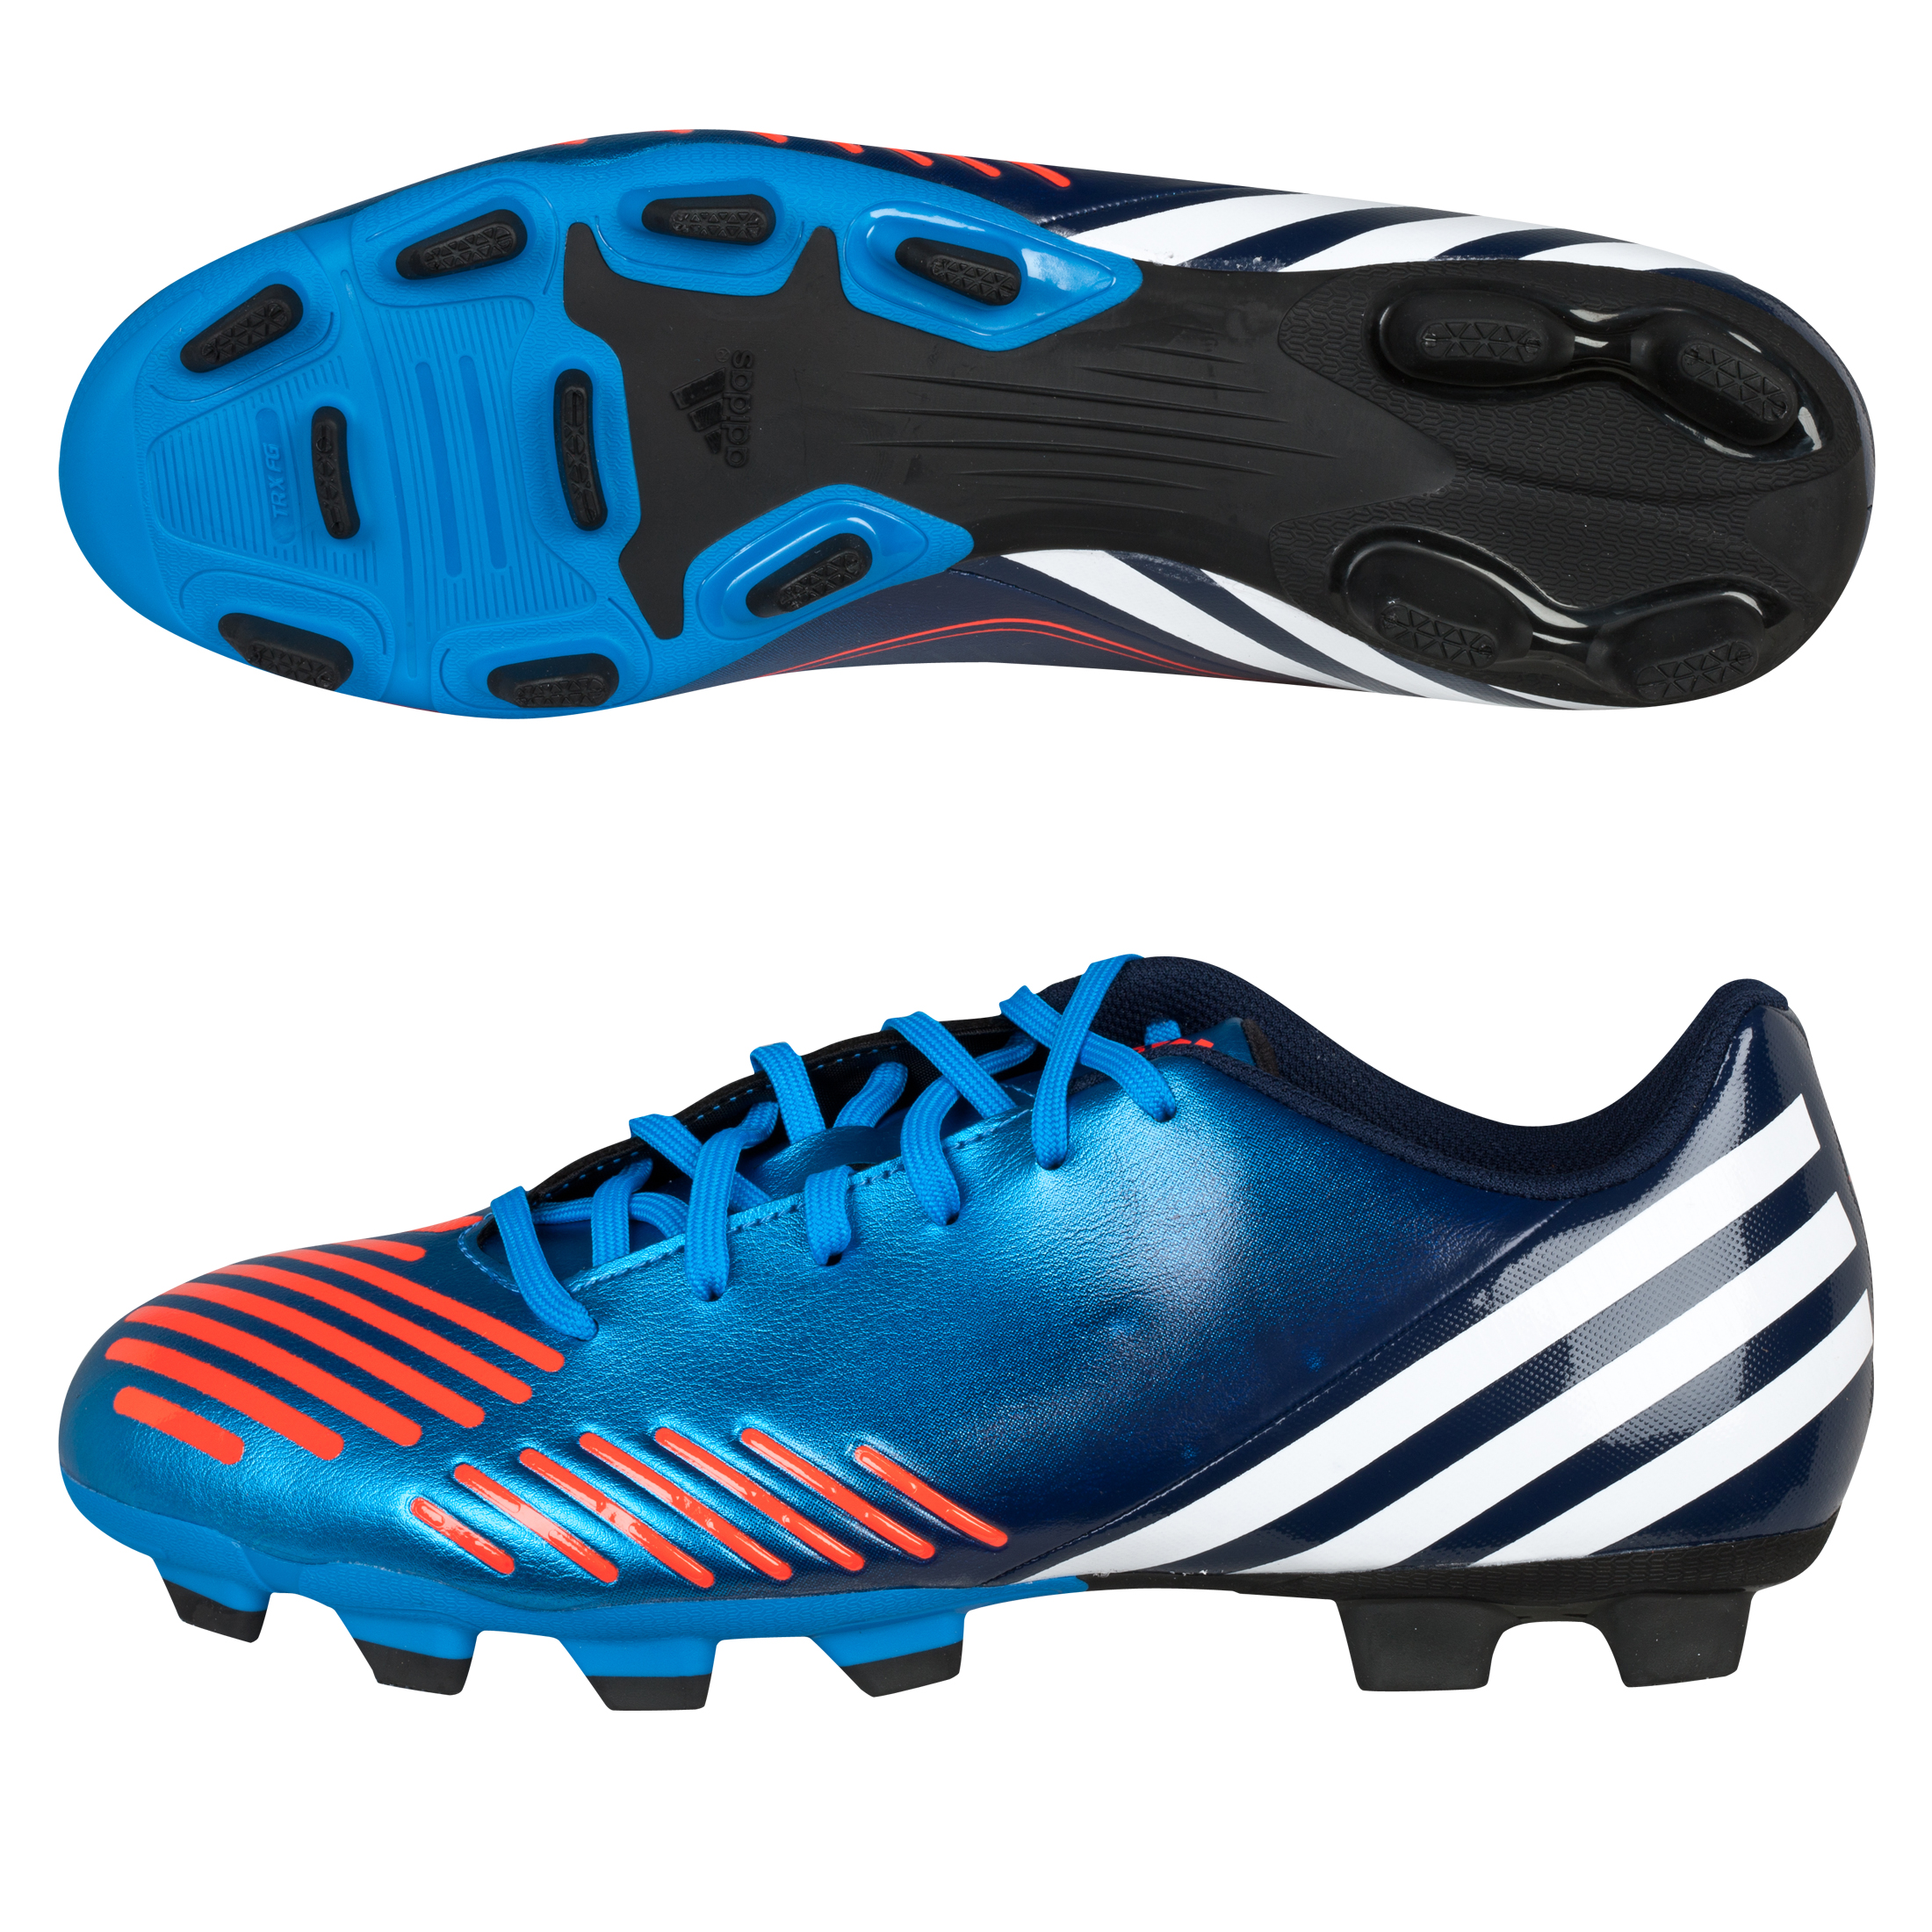 Adidas Predator LZ TRX Frim Ground Football Boots - Bright Blue/White/Infrared